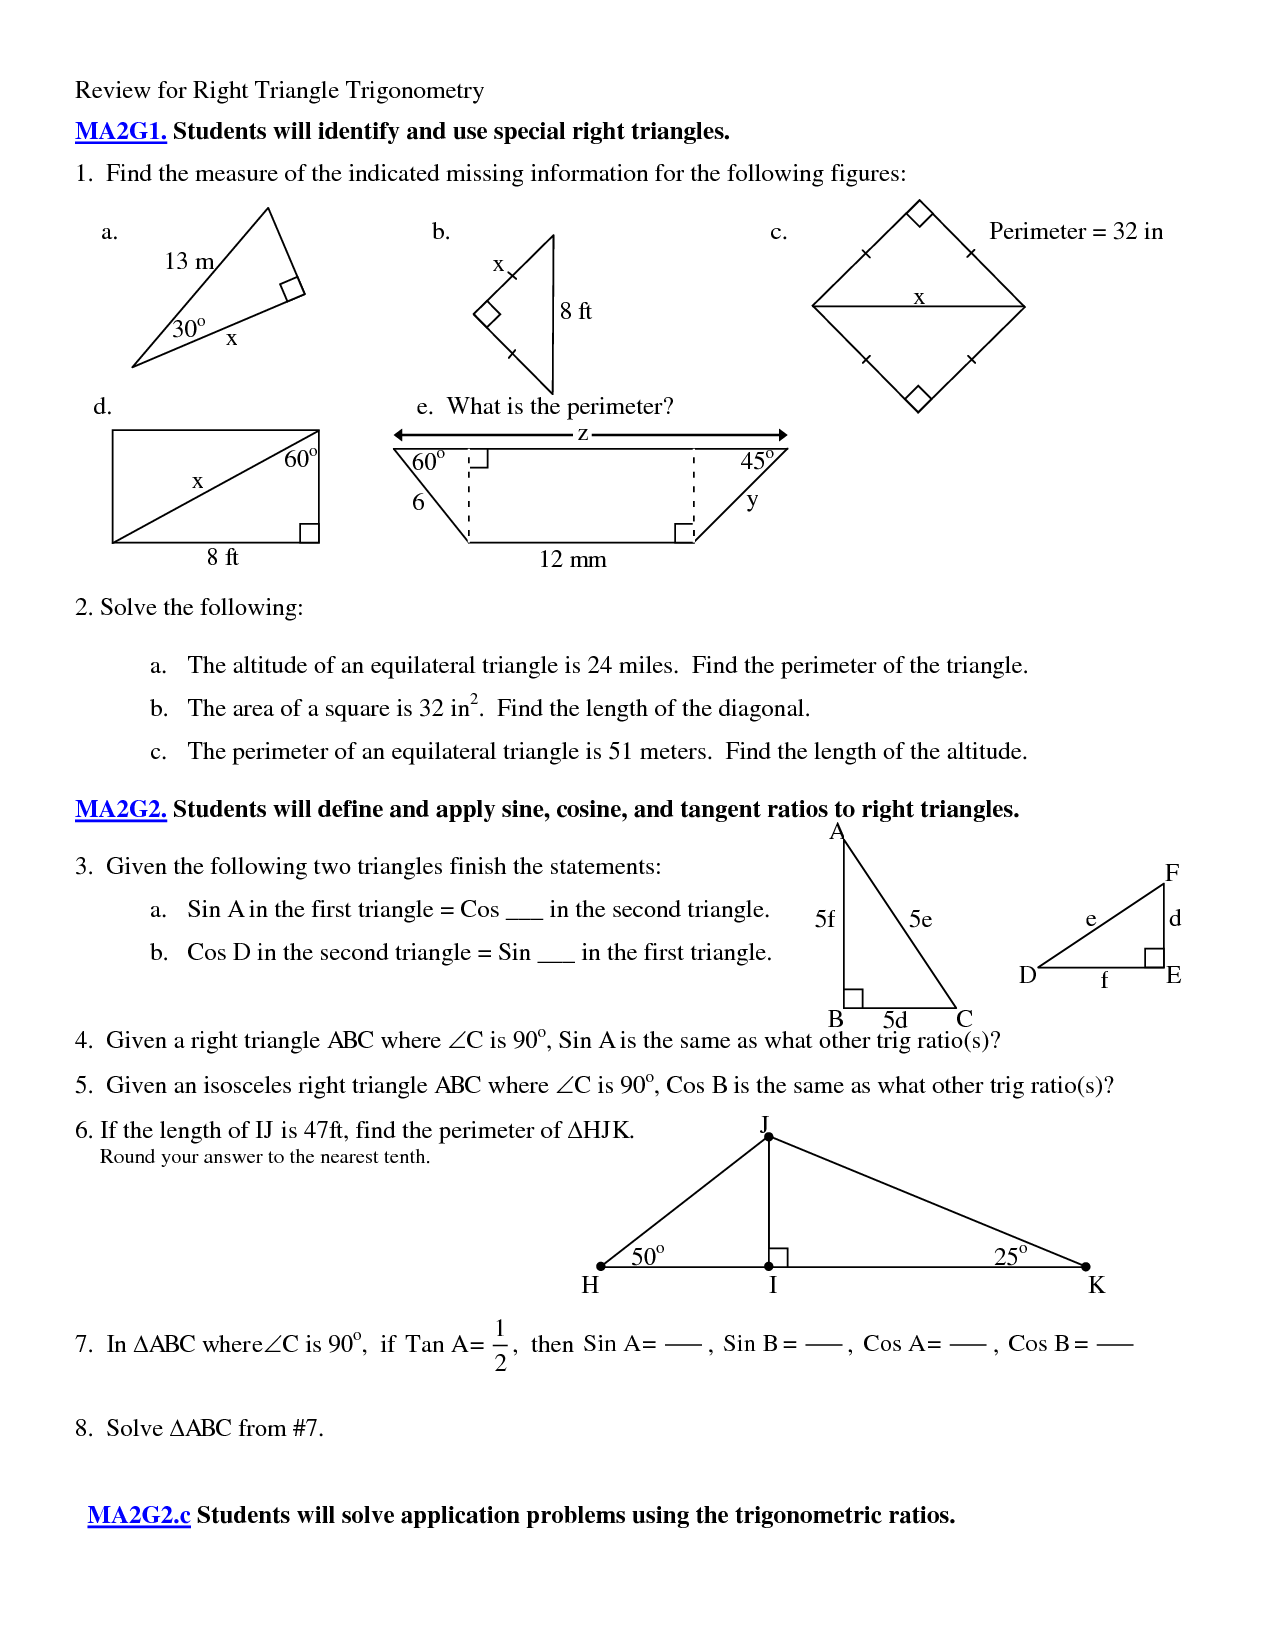 Trigonometry Problems Worksheet